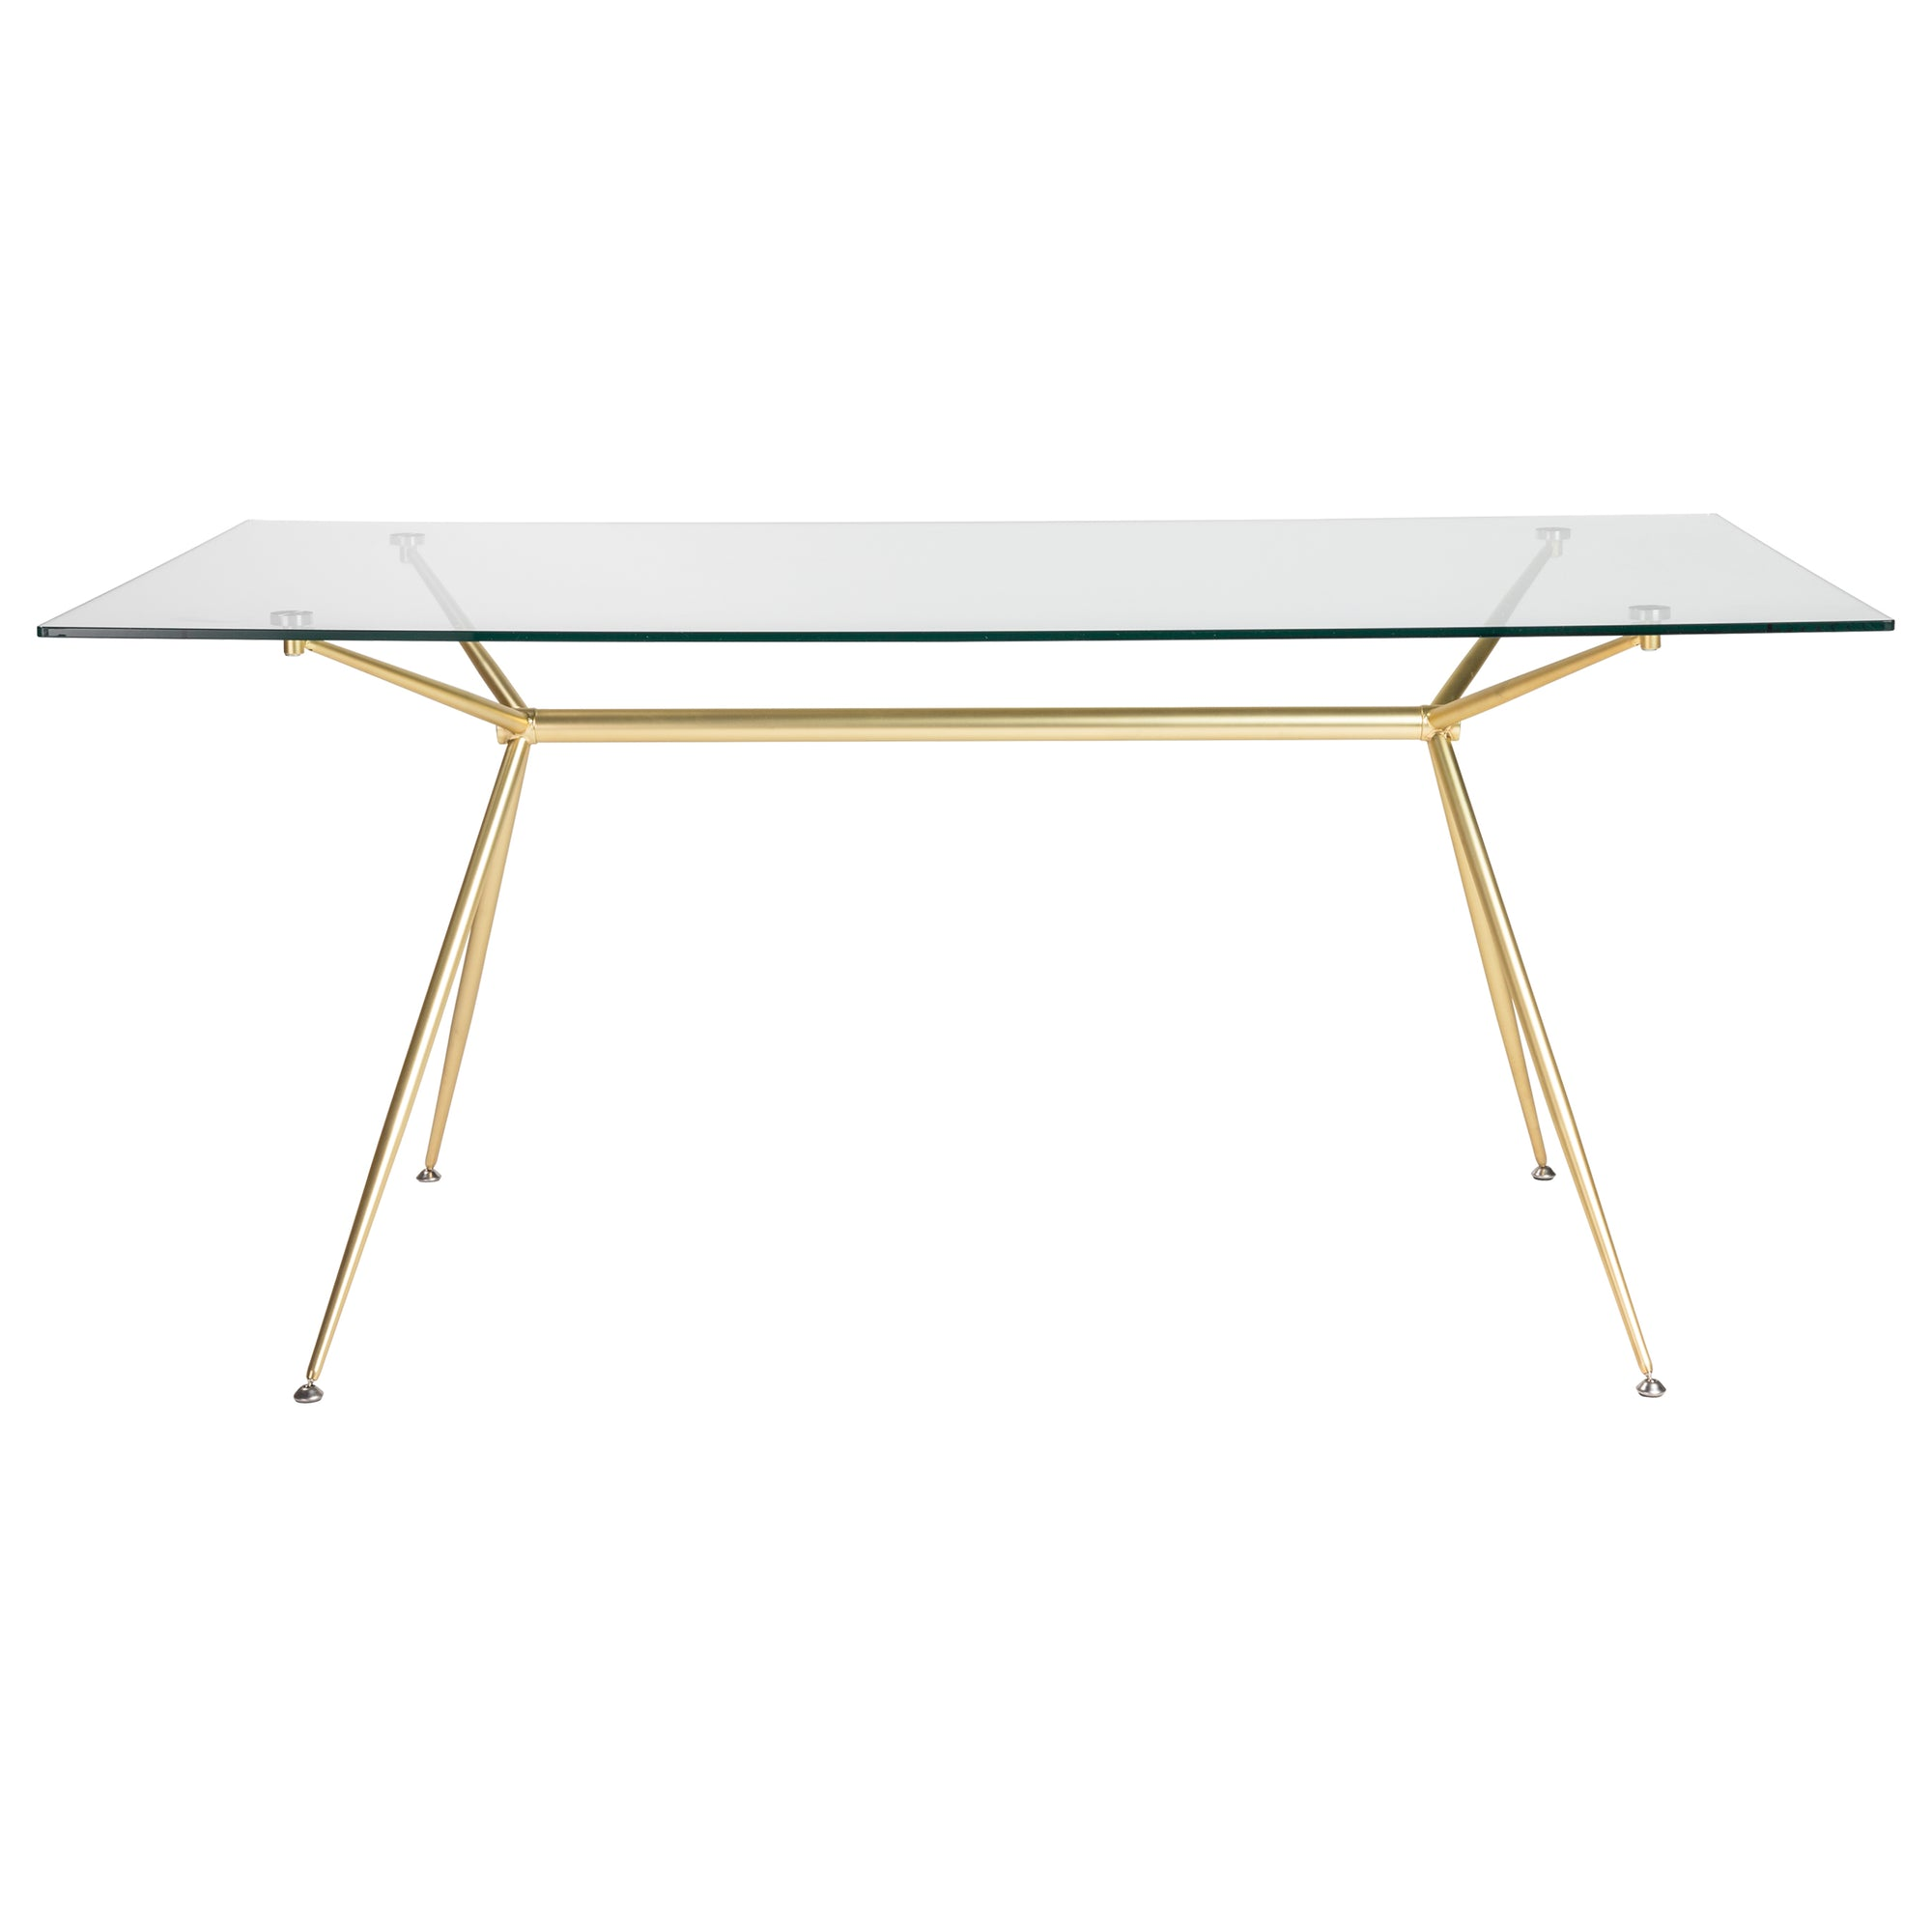 malaysia chairs tables modern office desks online philippines table fabulous furniture glass price uk design ikea photo with image top excellent onl outstanding desk